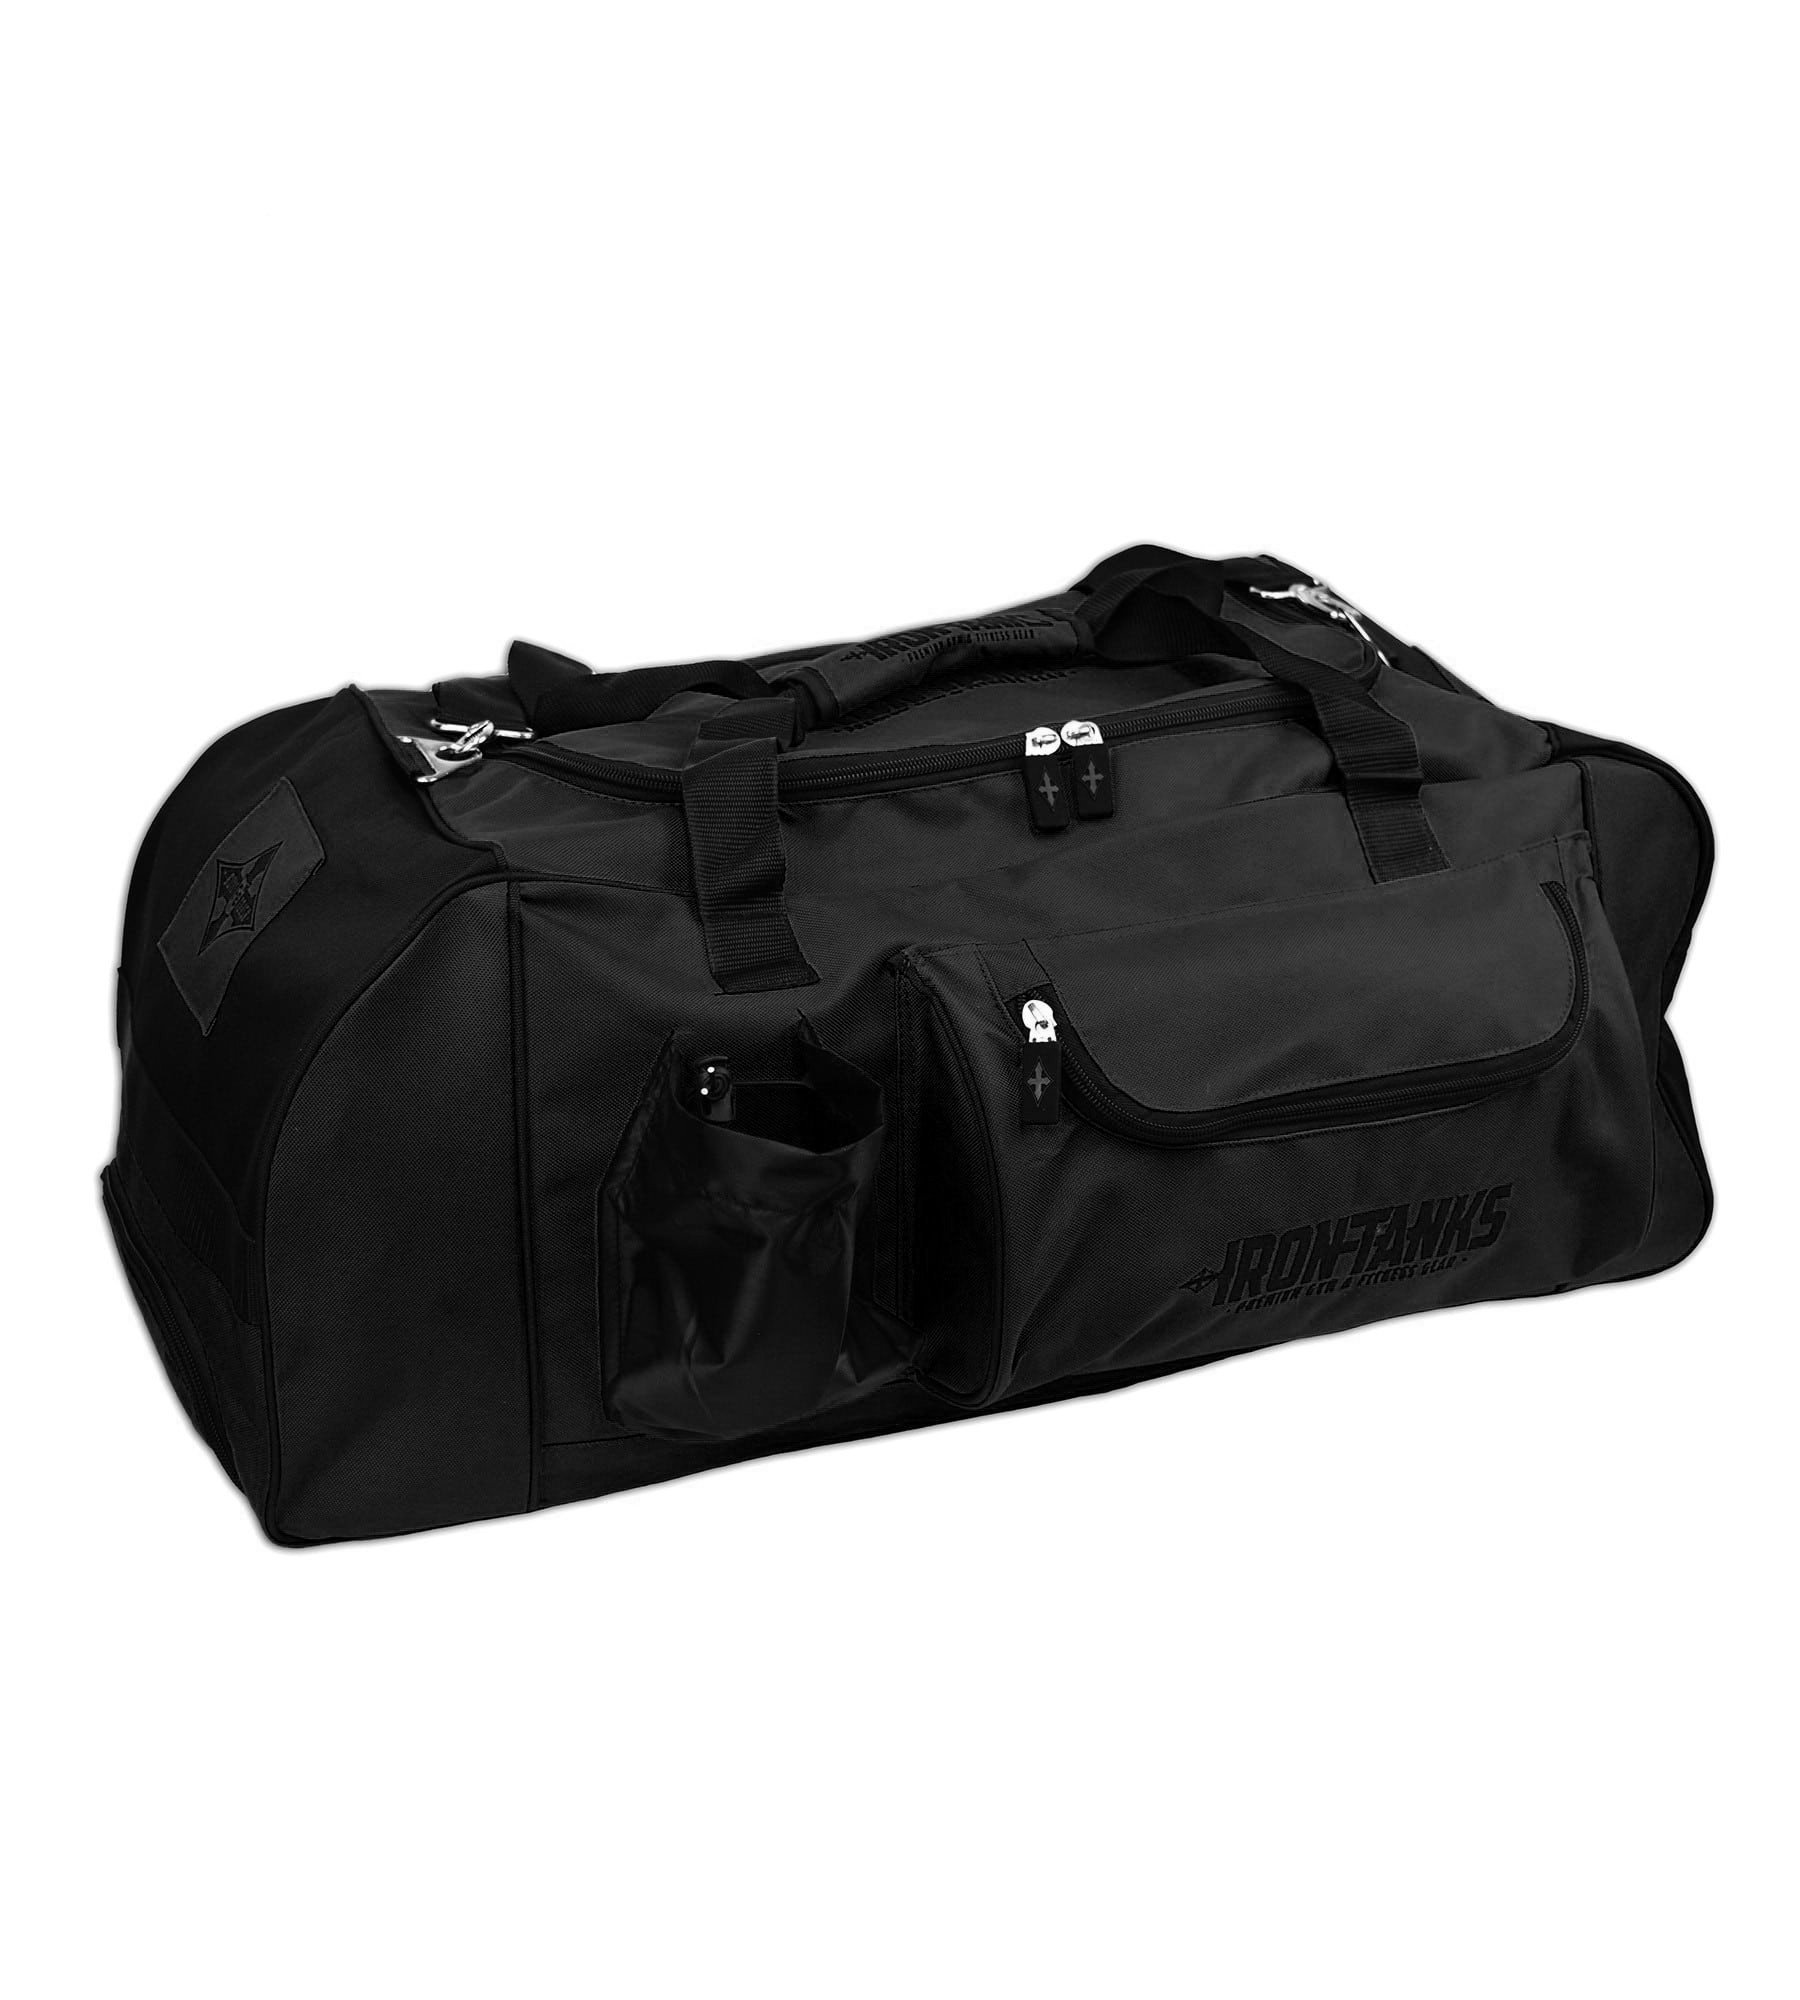 Iron Tanks Raven Black Gym Bag - Powerlifting Bodybuilding Heavy Duty Duffel